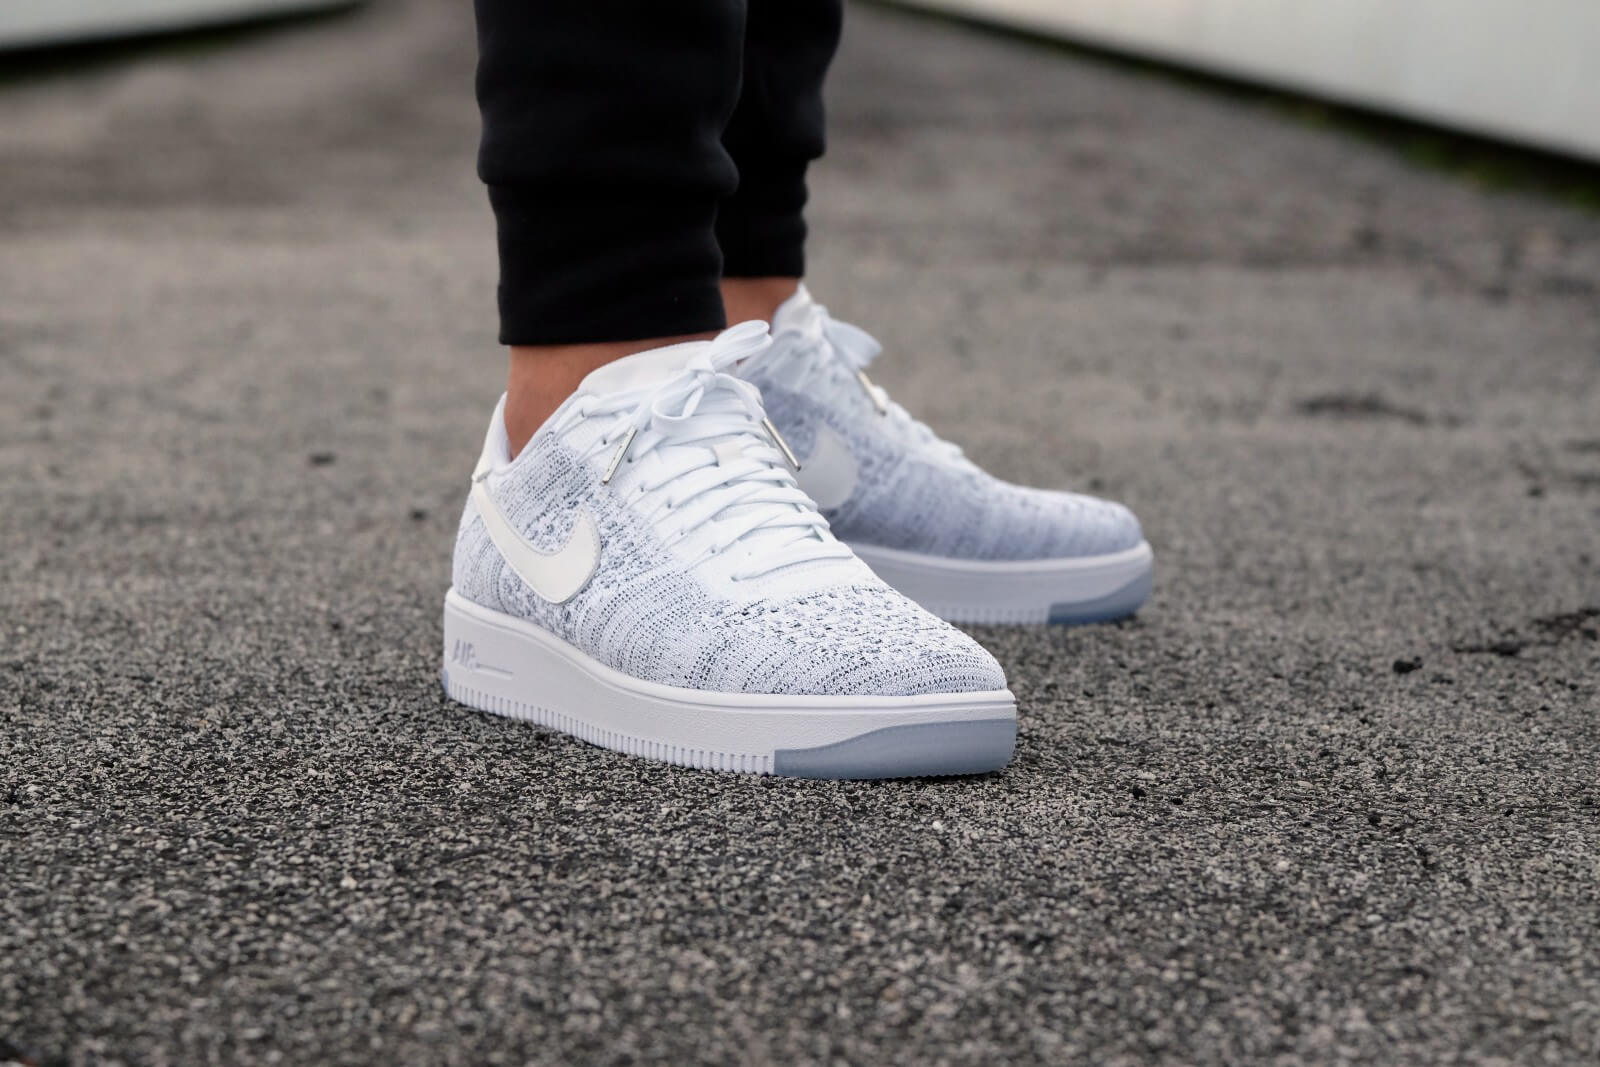 Nike WMNS Air Force 1 Flyknit Low WhiteWhite Black 820256 103